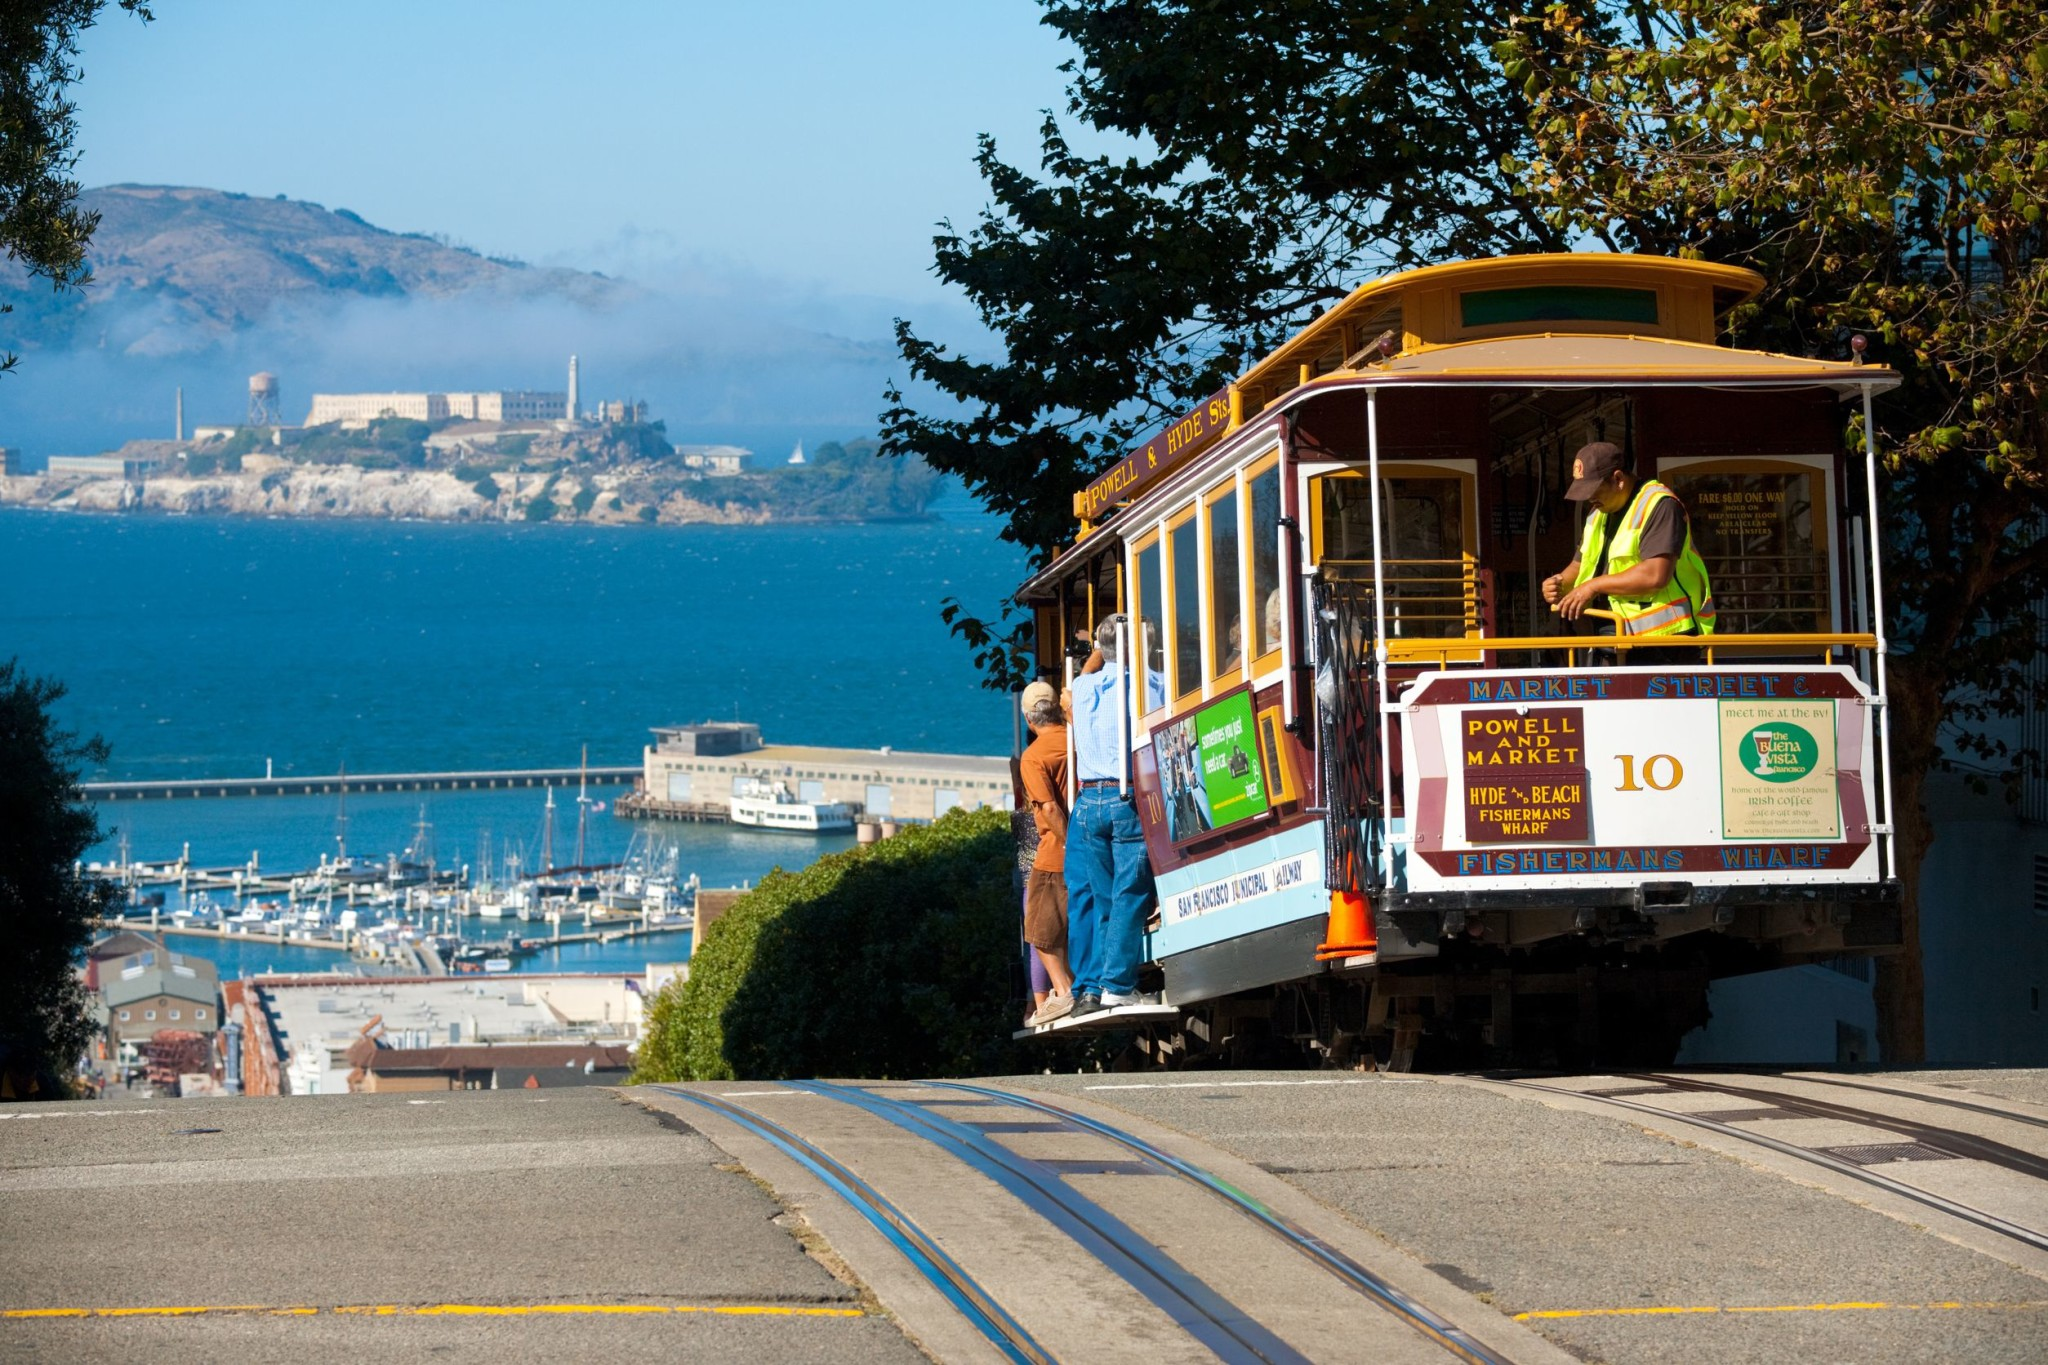 Cable car on top of Hyde Street in San Francisco, California